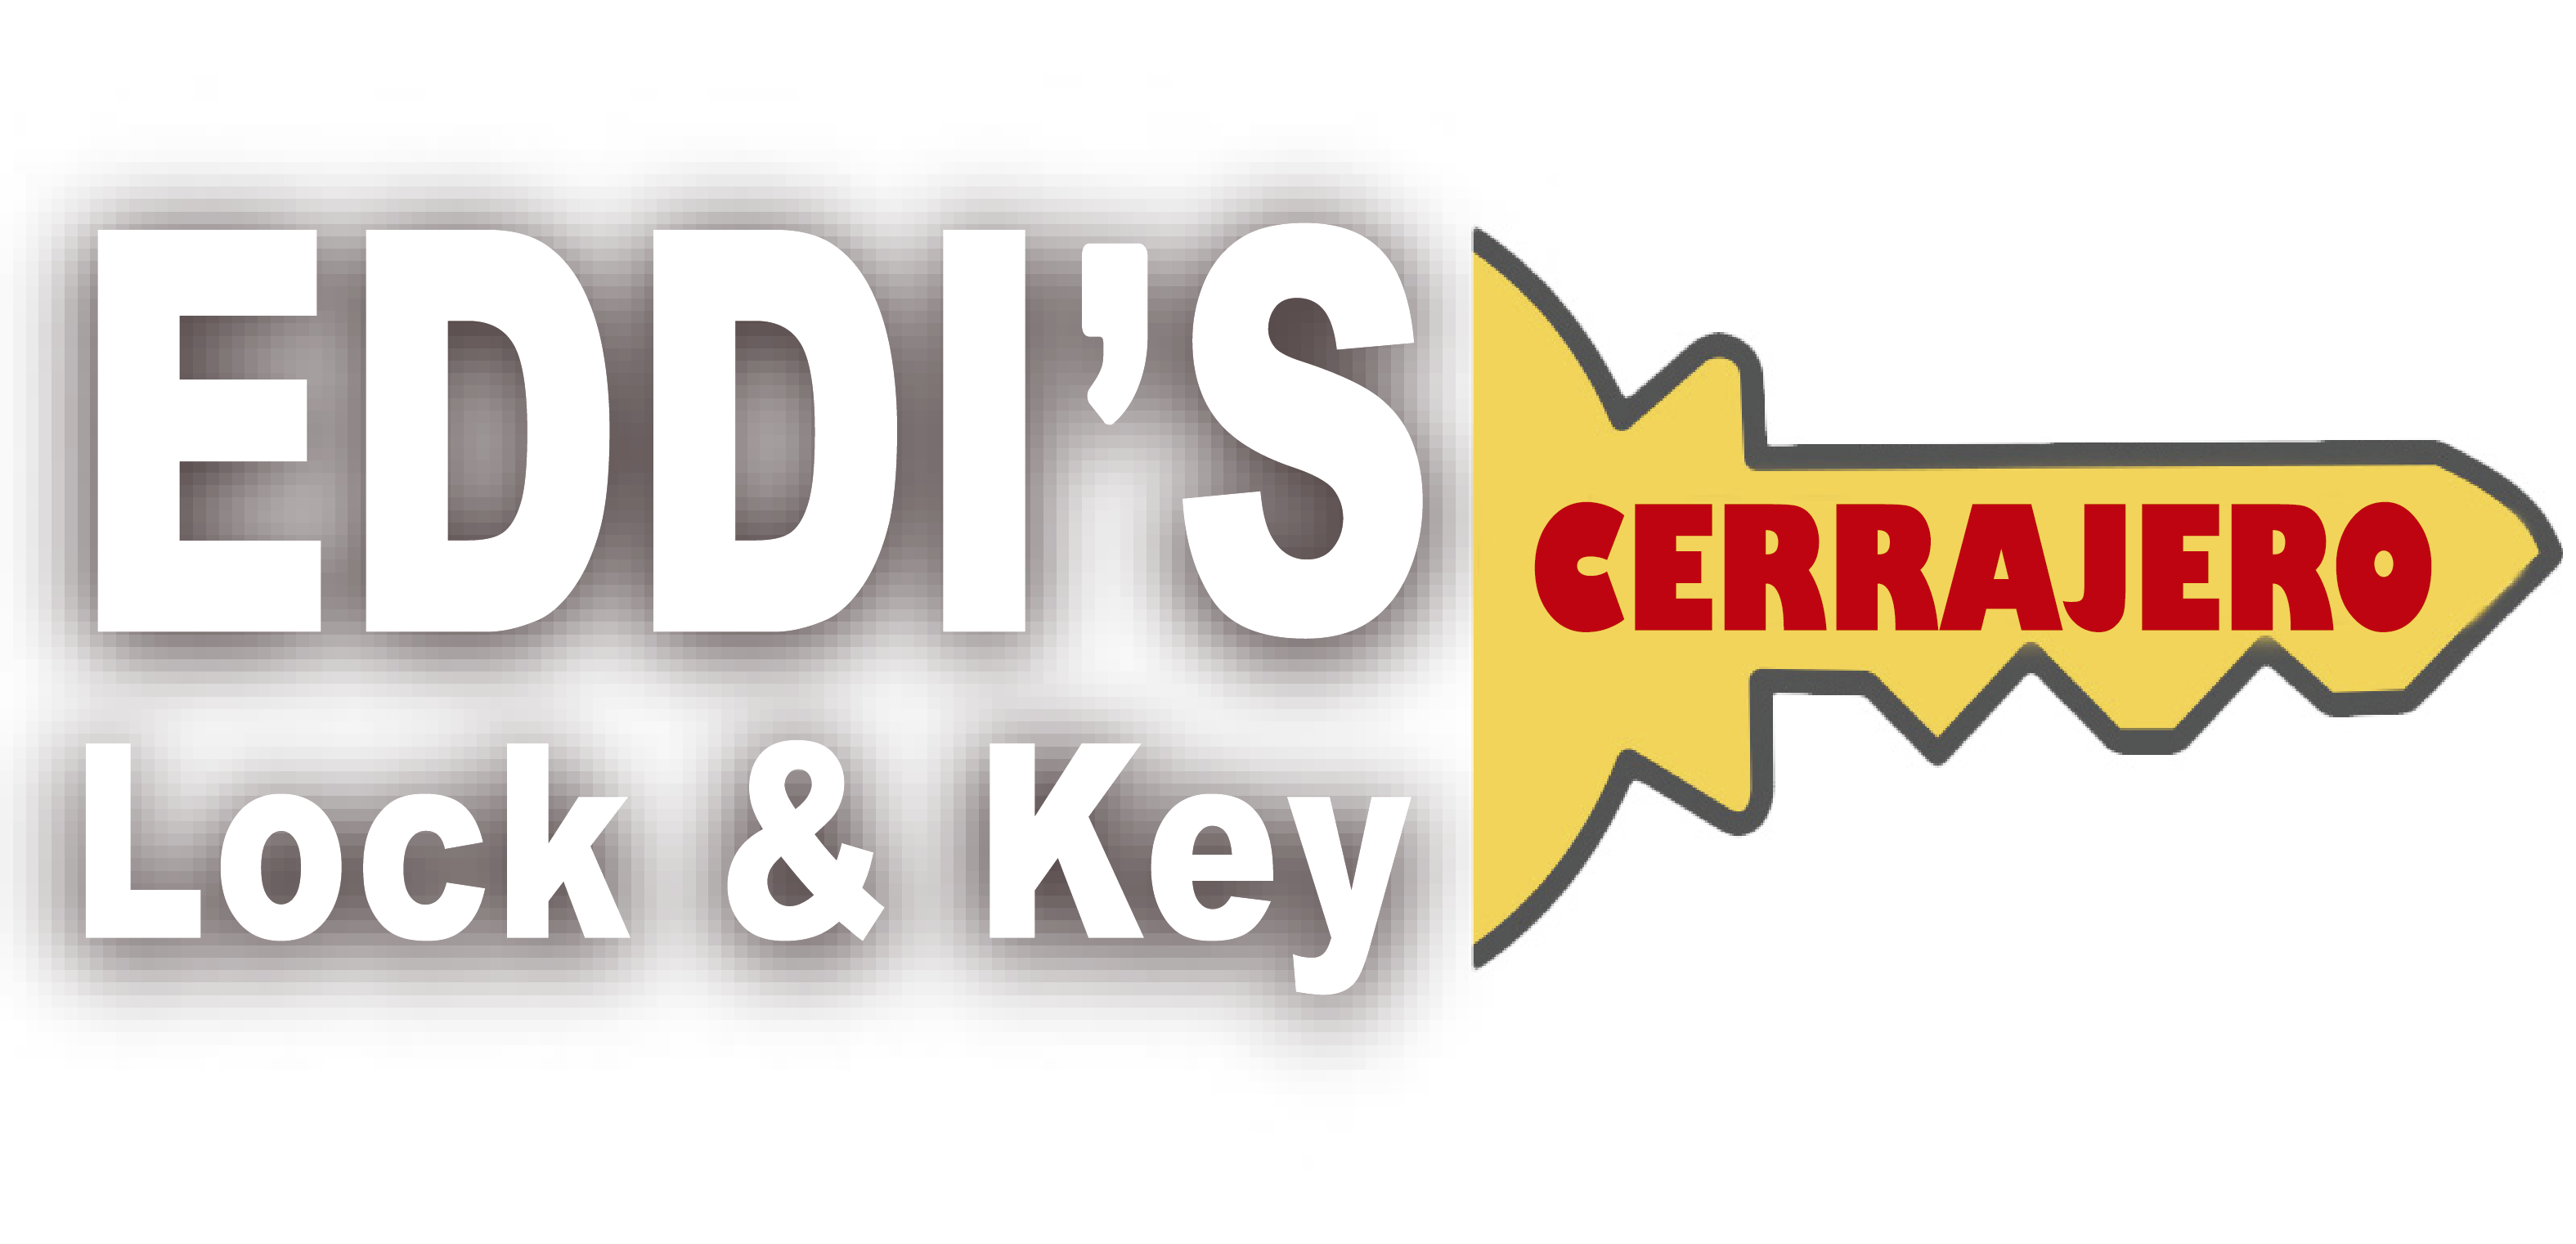 Eddis lock and key